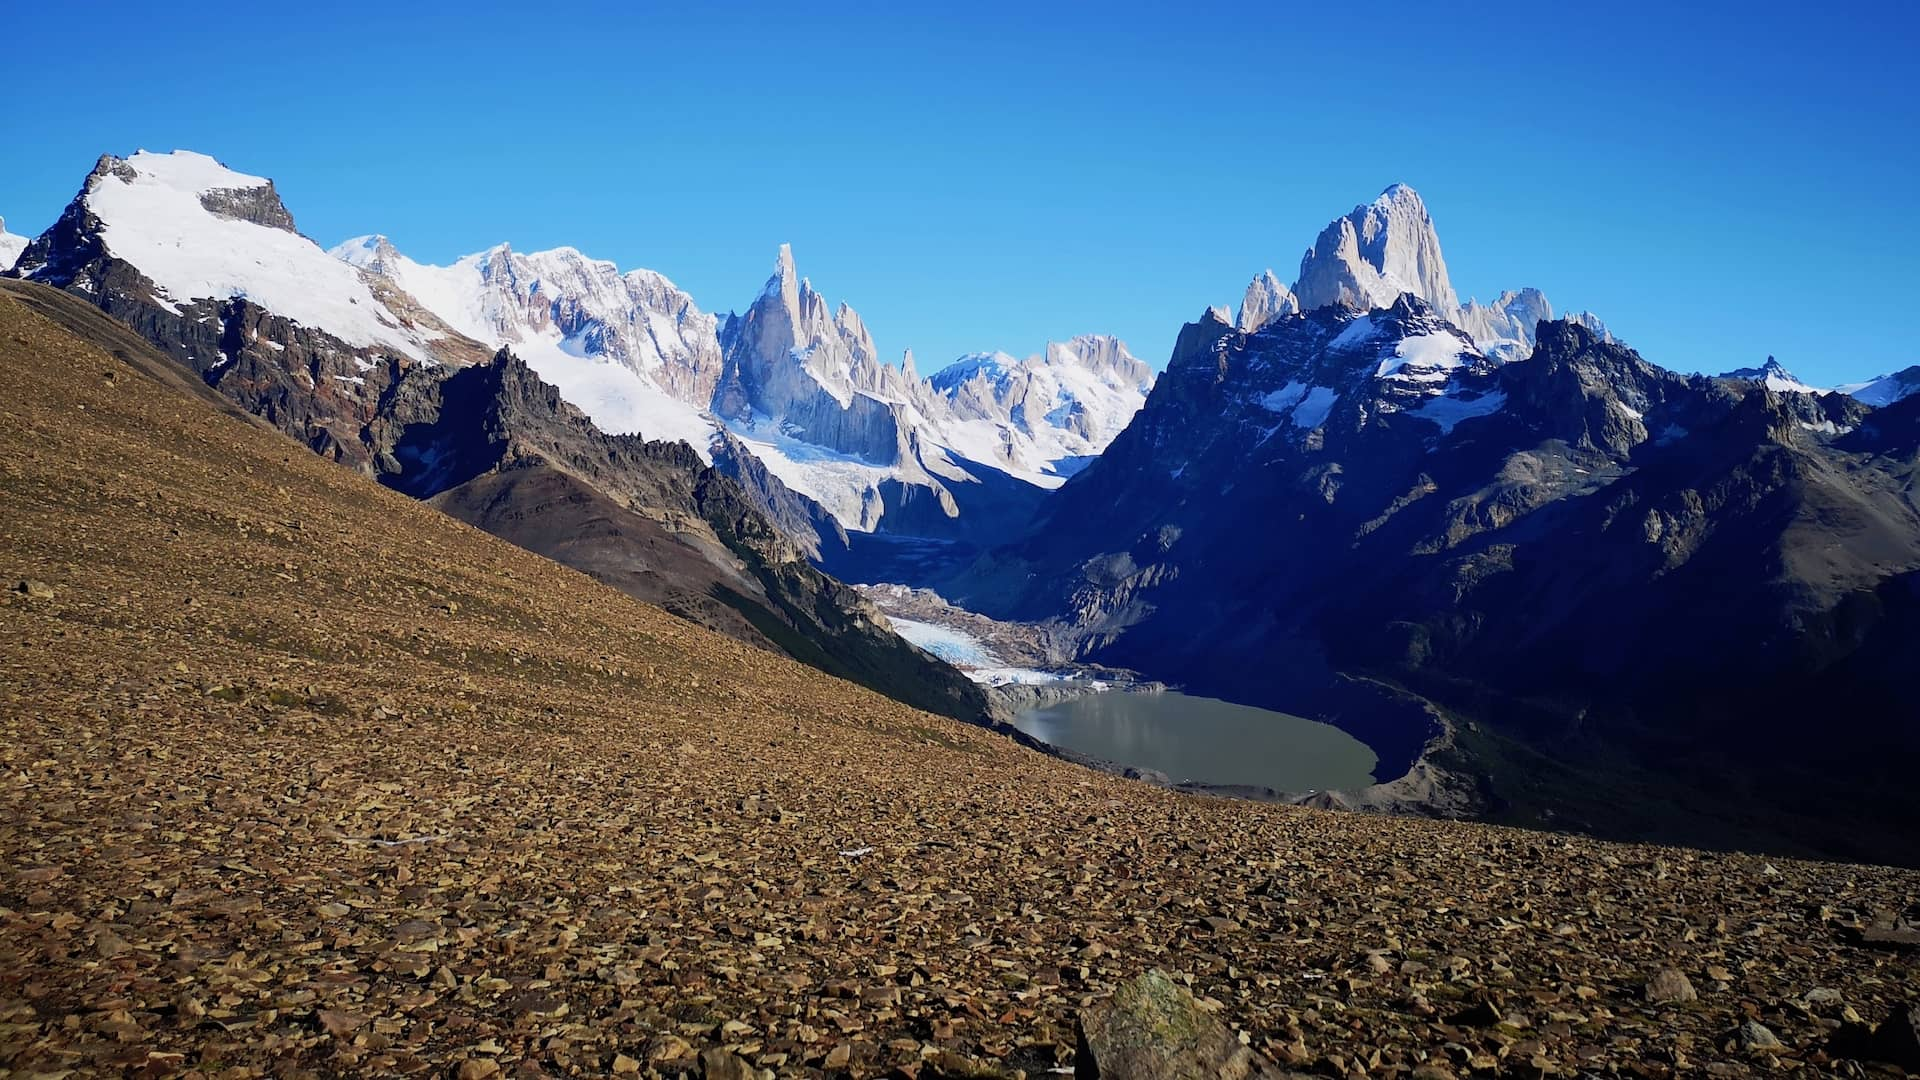 Panoramic view of both Cerro Torre and Mount Fitz Roy